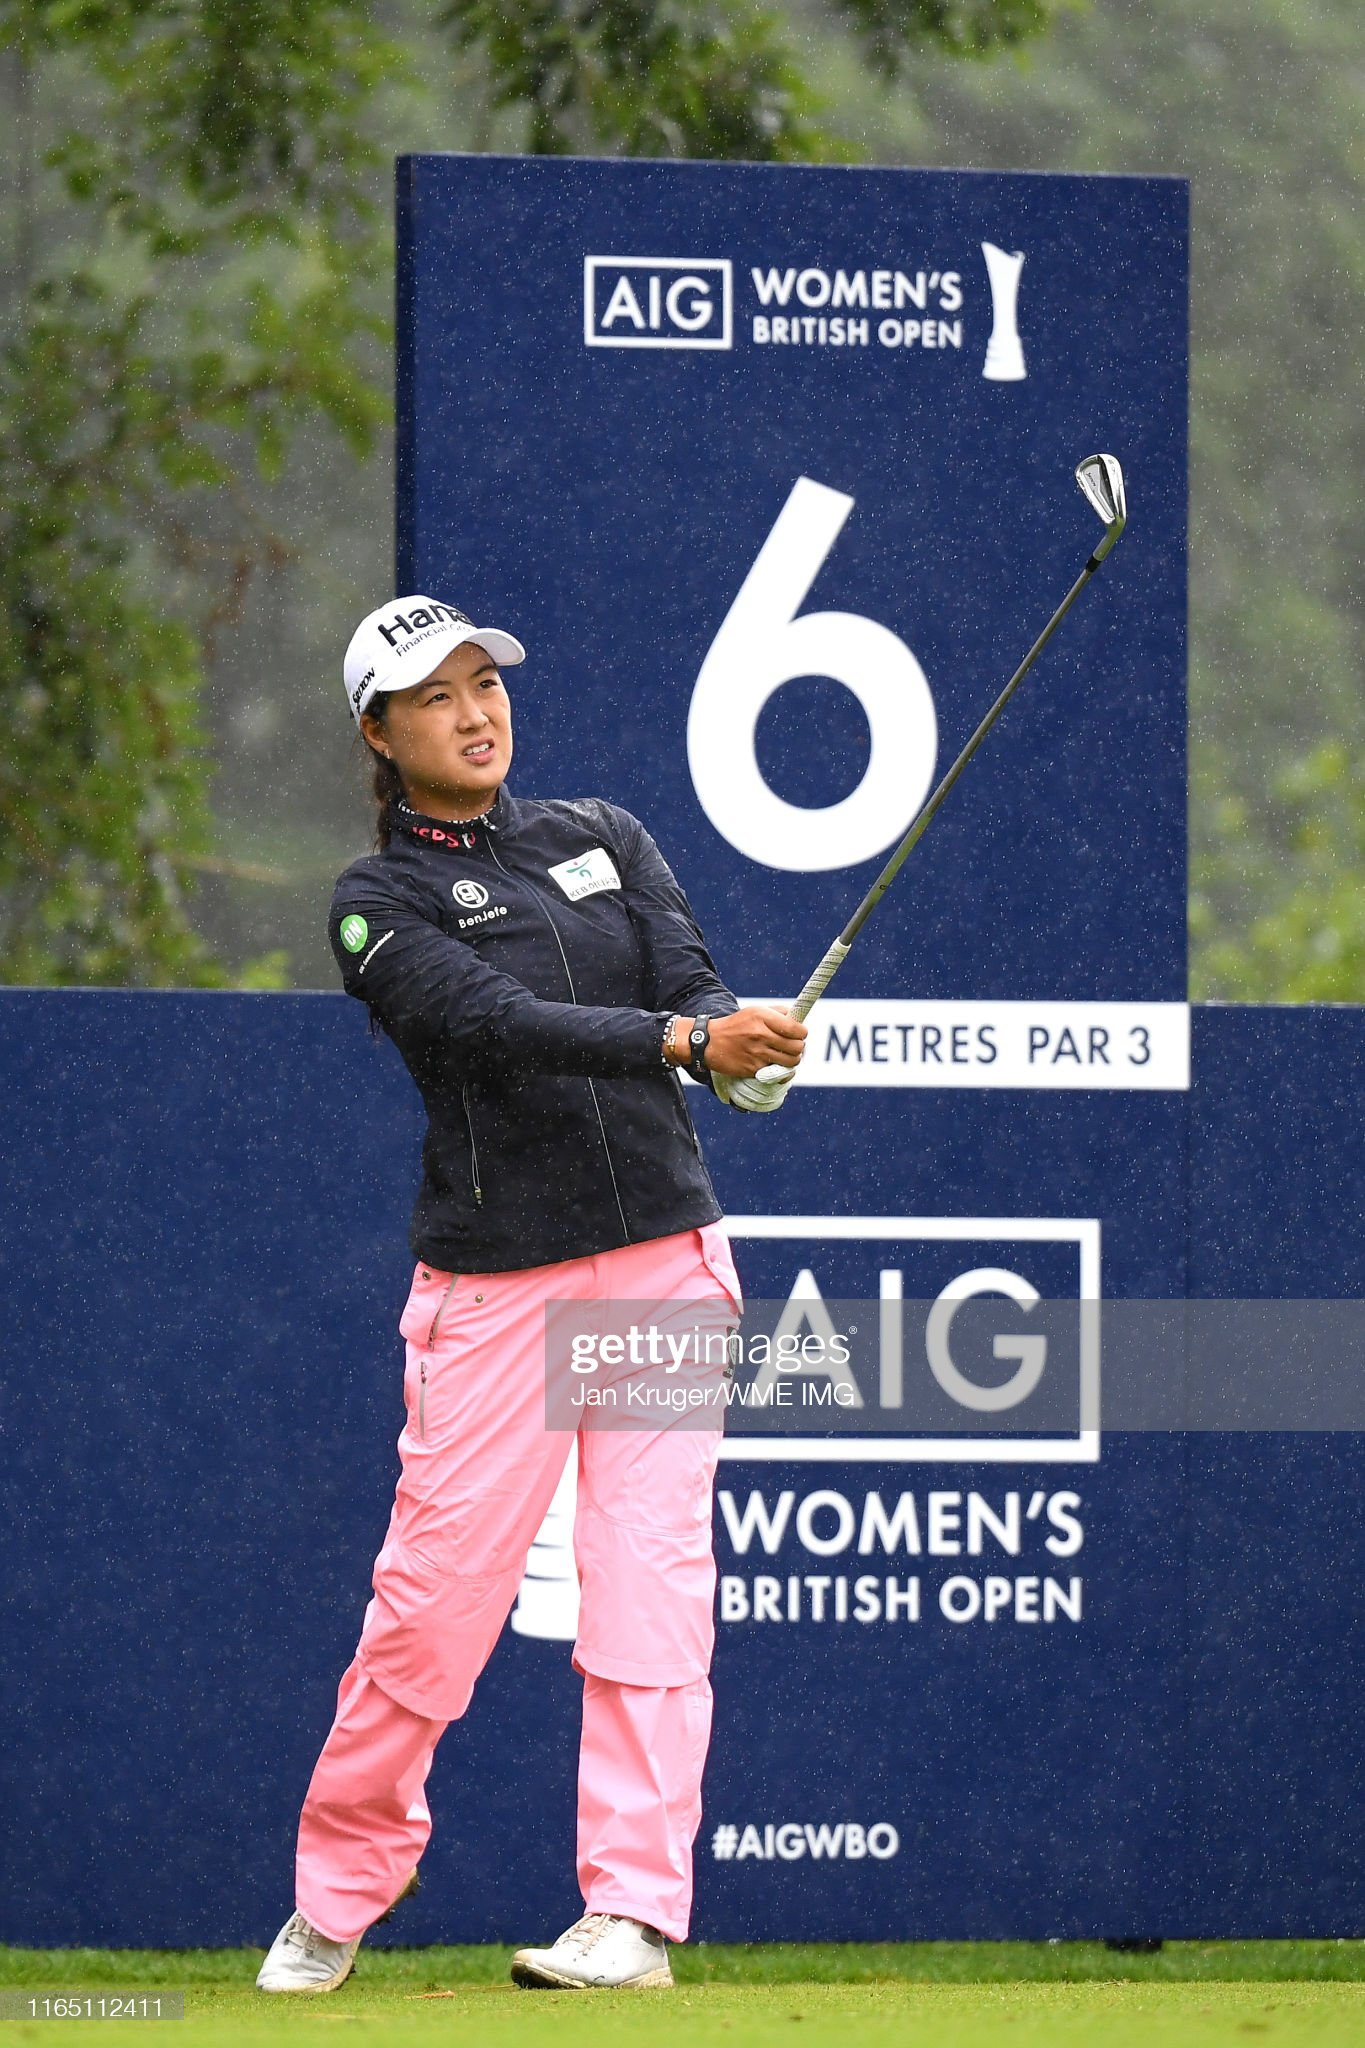 https://media.gettyimages.com/photos/minjee-lee-of-australia-tees-off-on-the-6th-hole-during-the-proam-to-picture-id1165112411?s=2048x2048